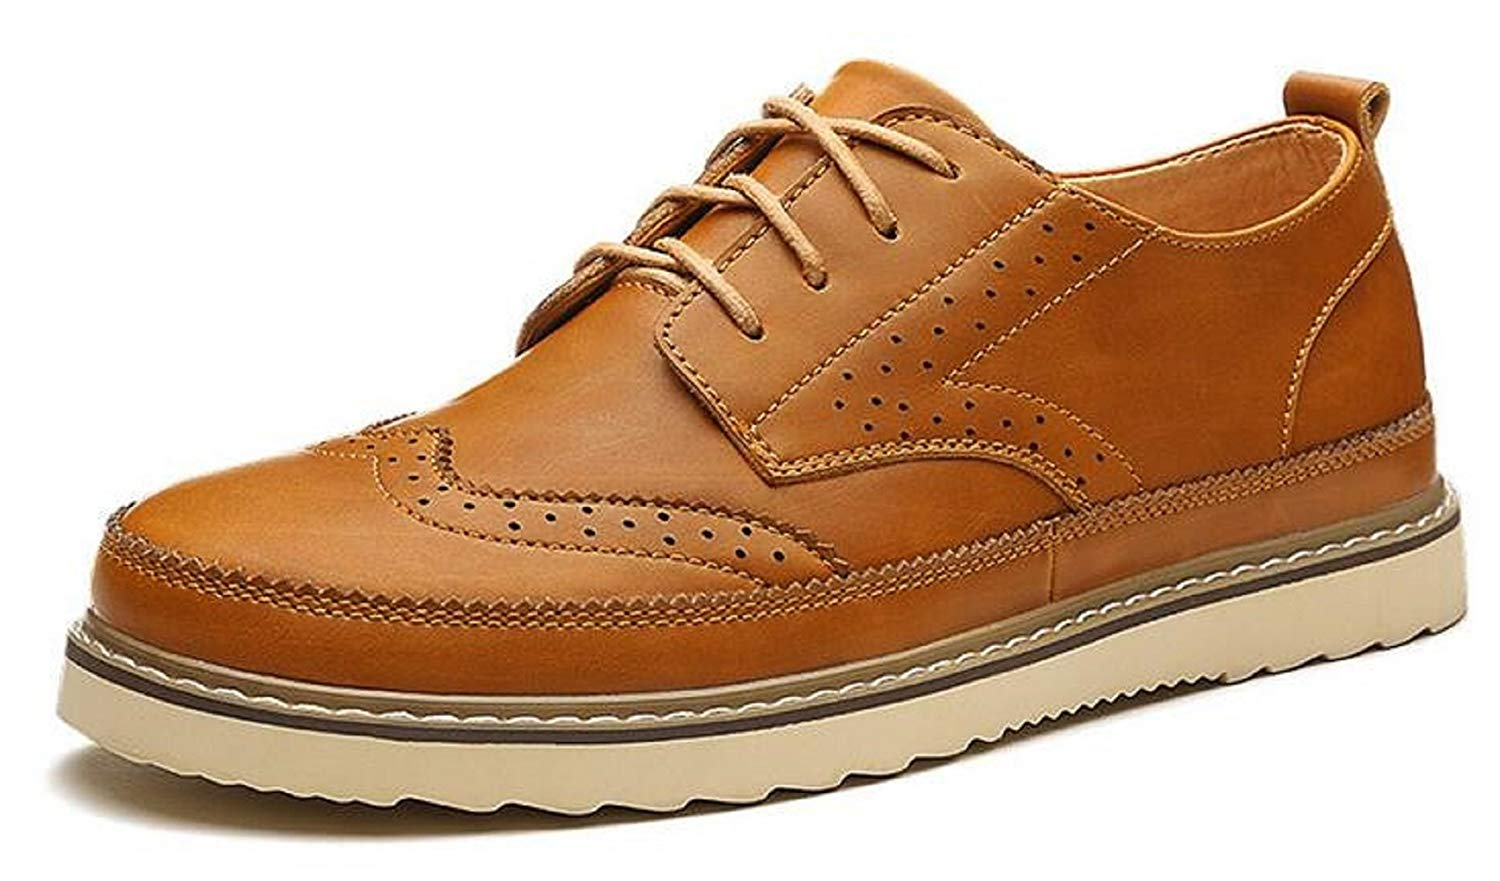 46ca17dc89b Cheap Mens Brogue Ankle Boot, find Mens Brogue Ankle Boot deals on ...